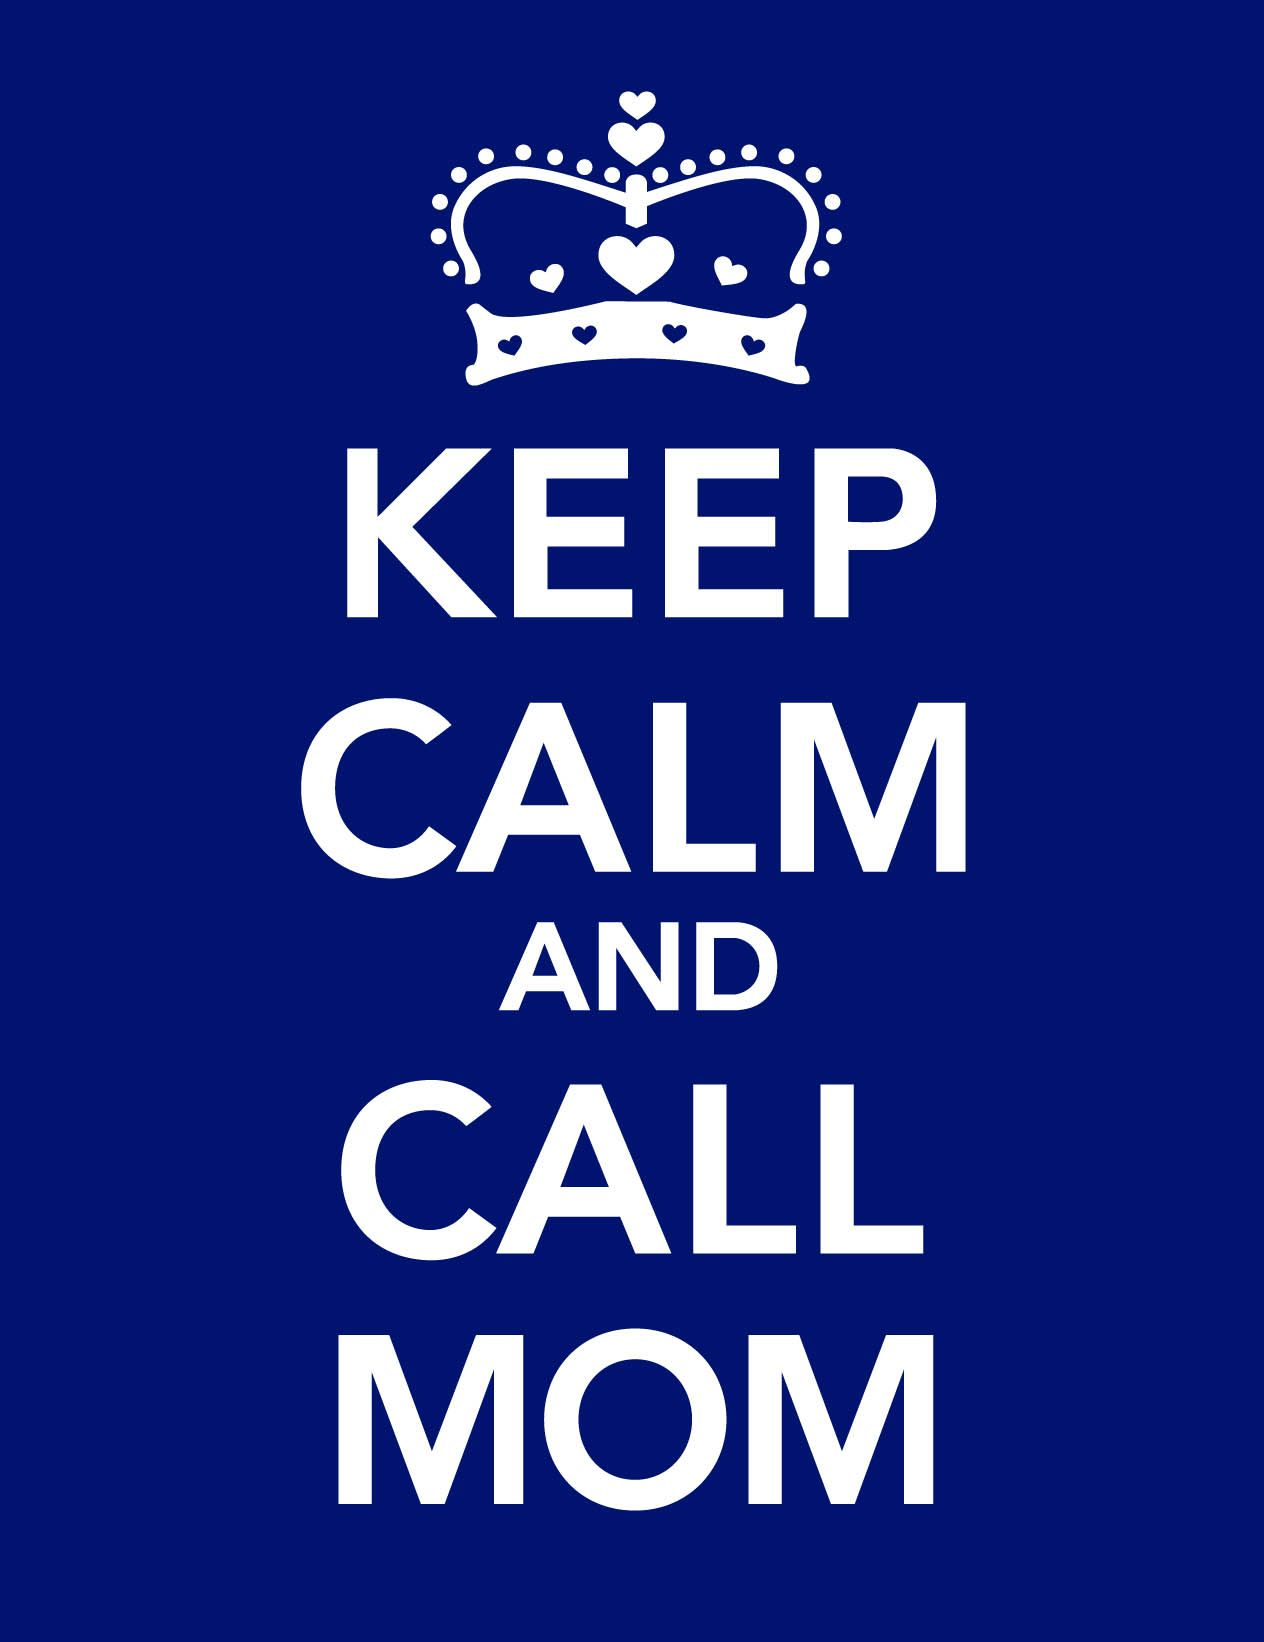 Keep Calm Quotes Keep Calm And Call Mom Eveything Will Be Okay  School Projects